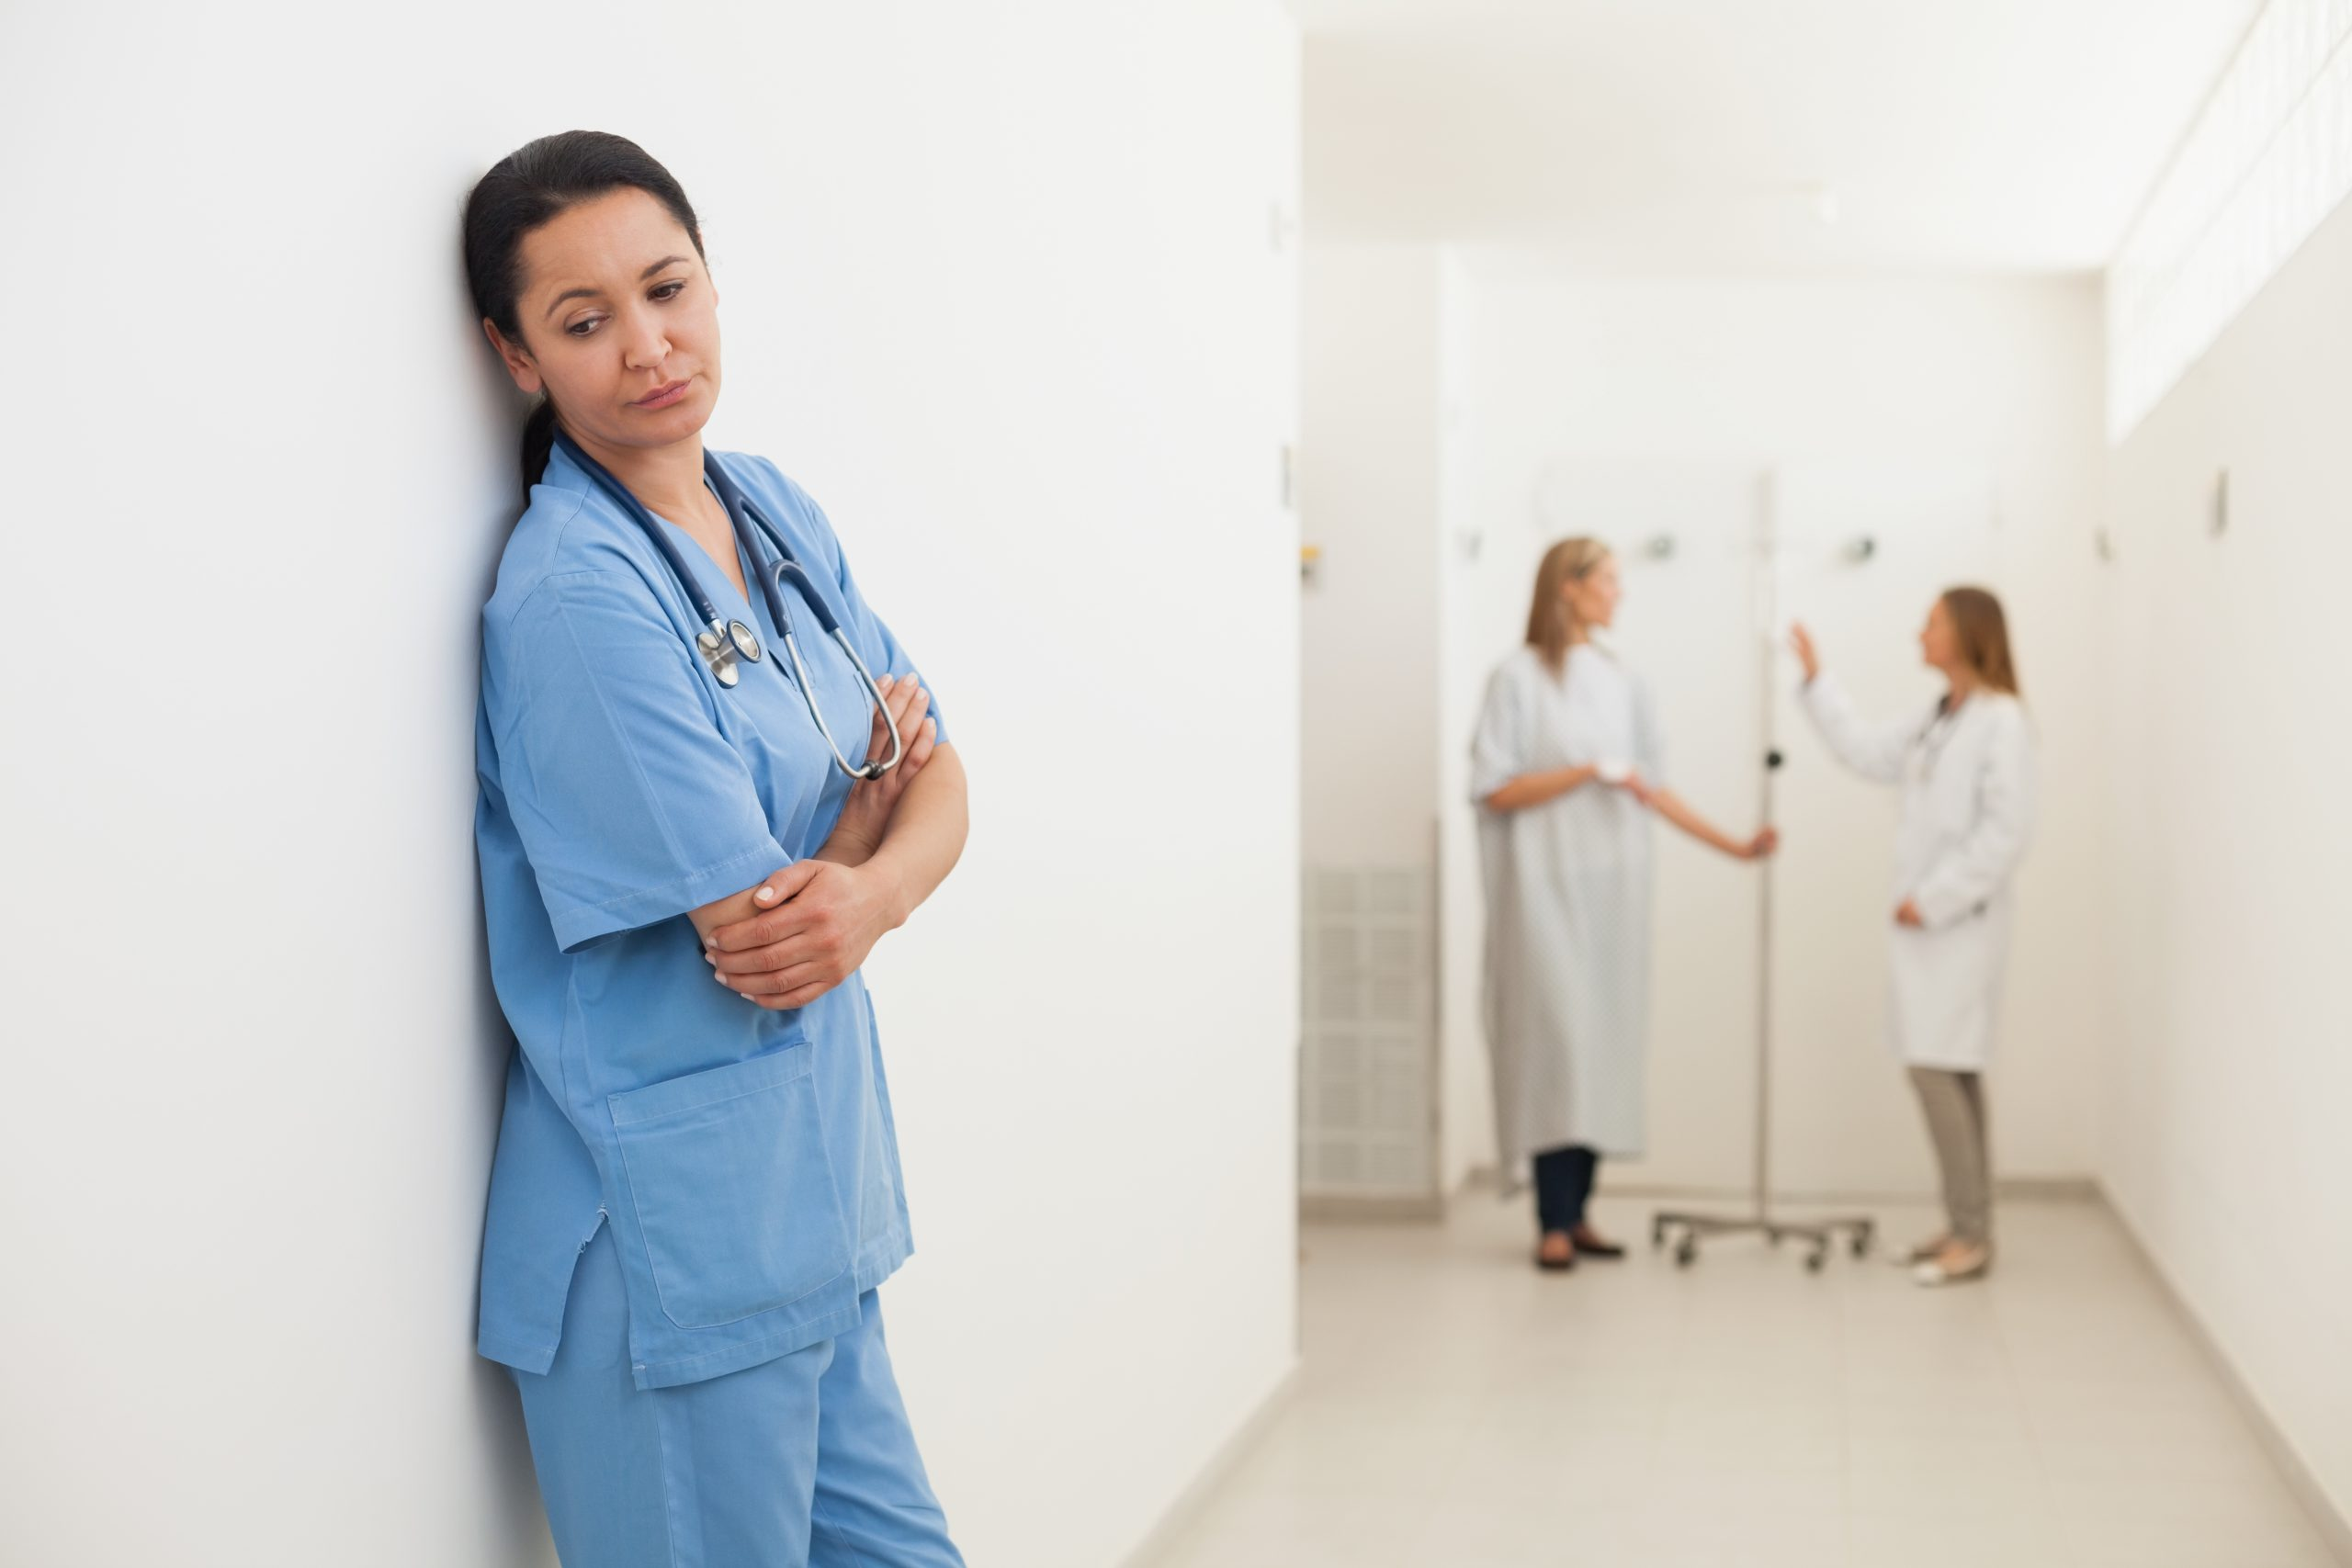 Nurse feeling sad with doctor talking to patient in hospital corridor. MEDIjobs